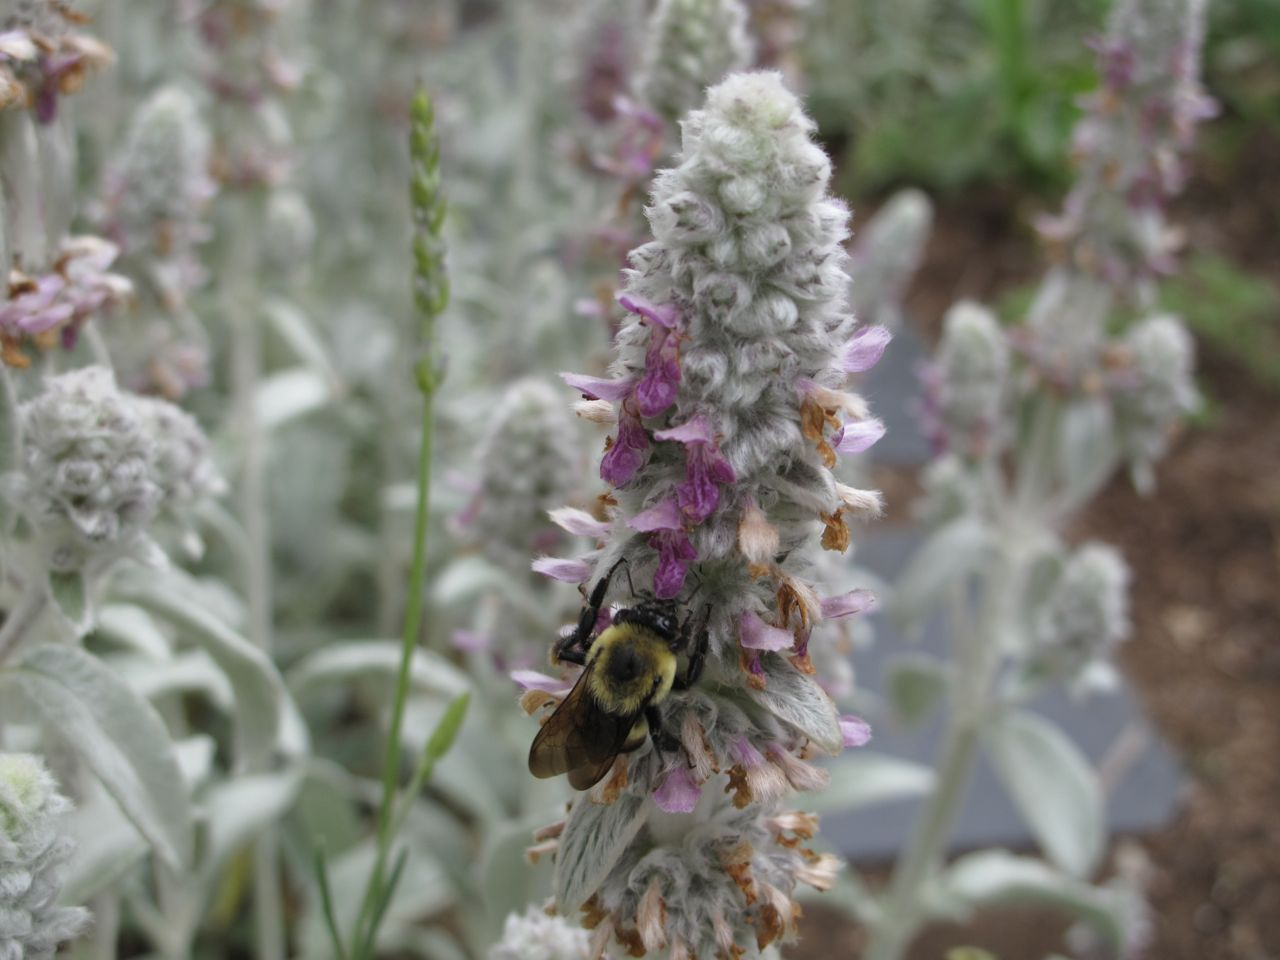 Stachys byzantina, Lamb's Ear, is originally from Turkey, Armenia and Iran, but has been introduced globally as an ornamental. It is in the Lamiaceae family, which also contains most of the herbs you are familiar with, such as rosemary, basil and mint. It is commonly known as the mint family. [x]